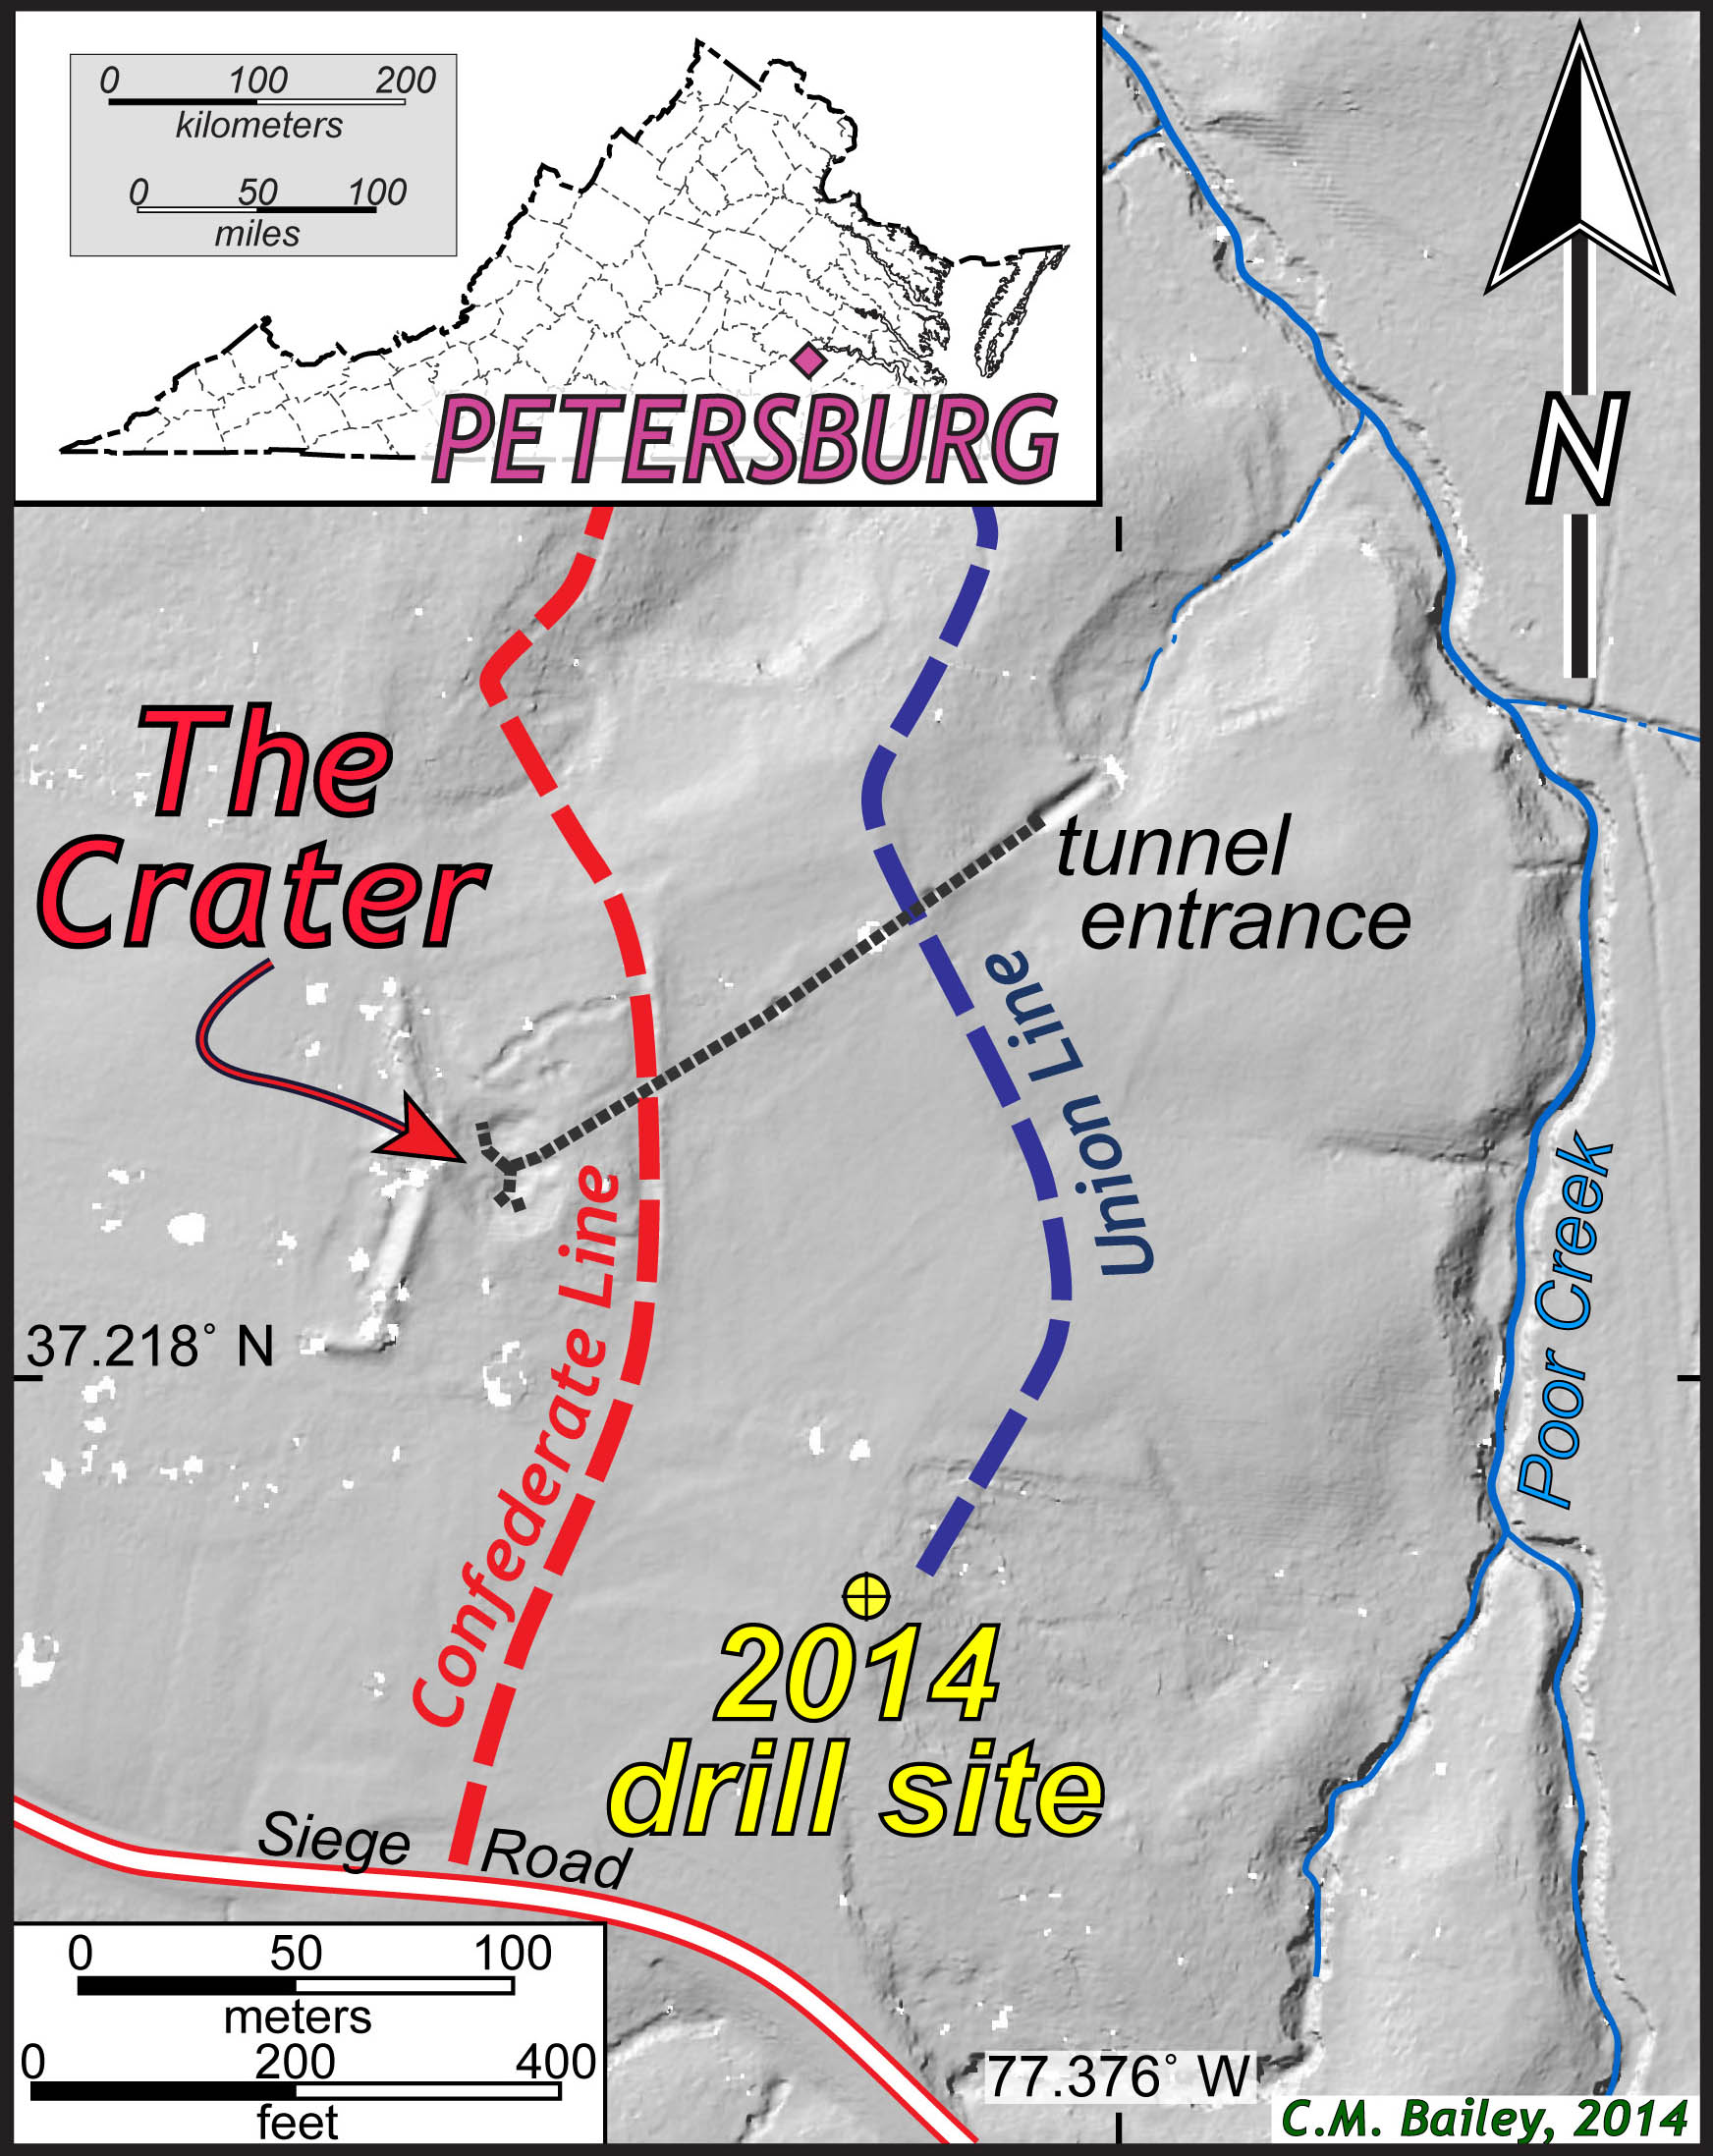 The Saddest Affair A Geologic Perspective on the Battle of the